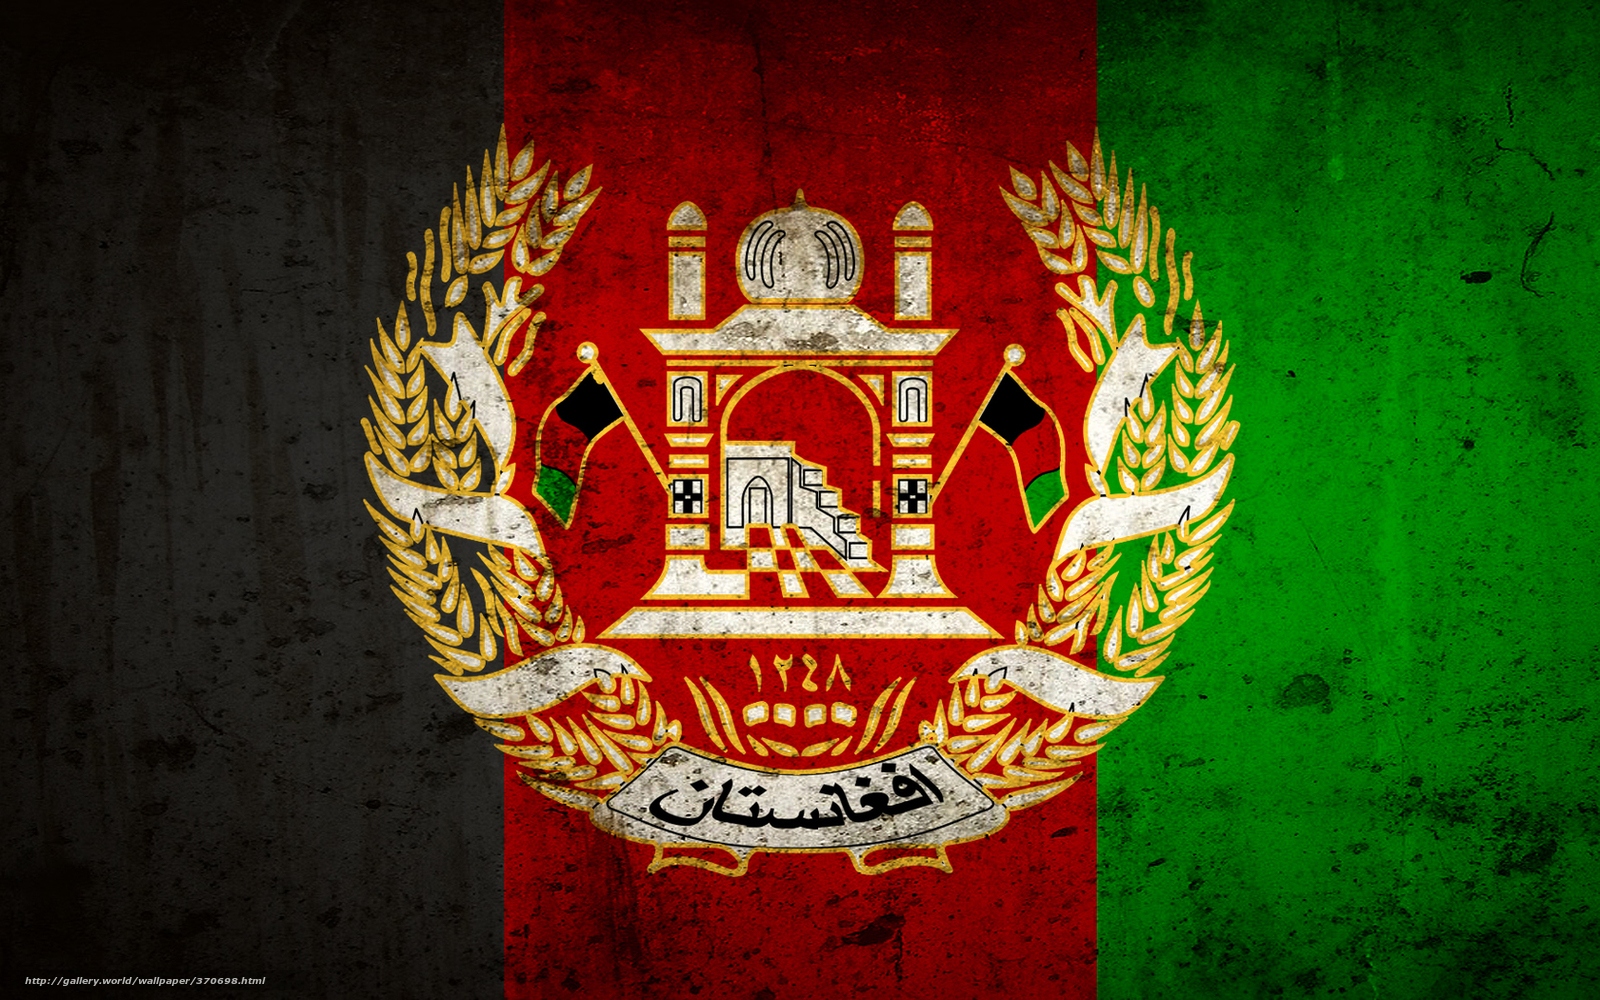 Download Wallpapers Afghanistan Flag Re Downloadsinfo [1600x1000 1600x1000